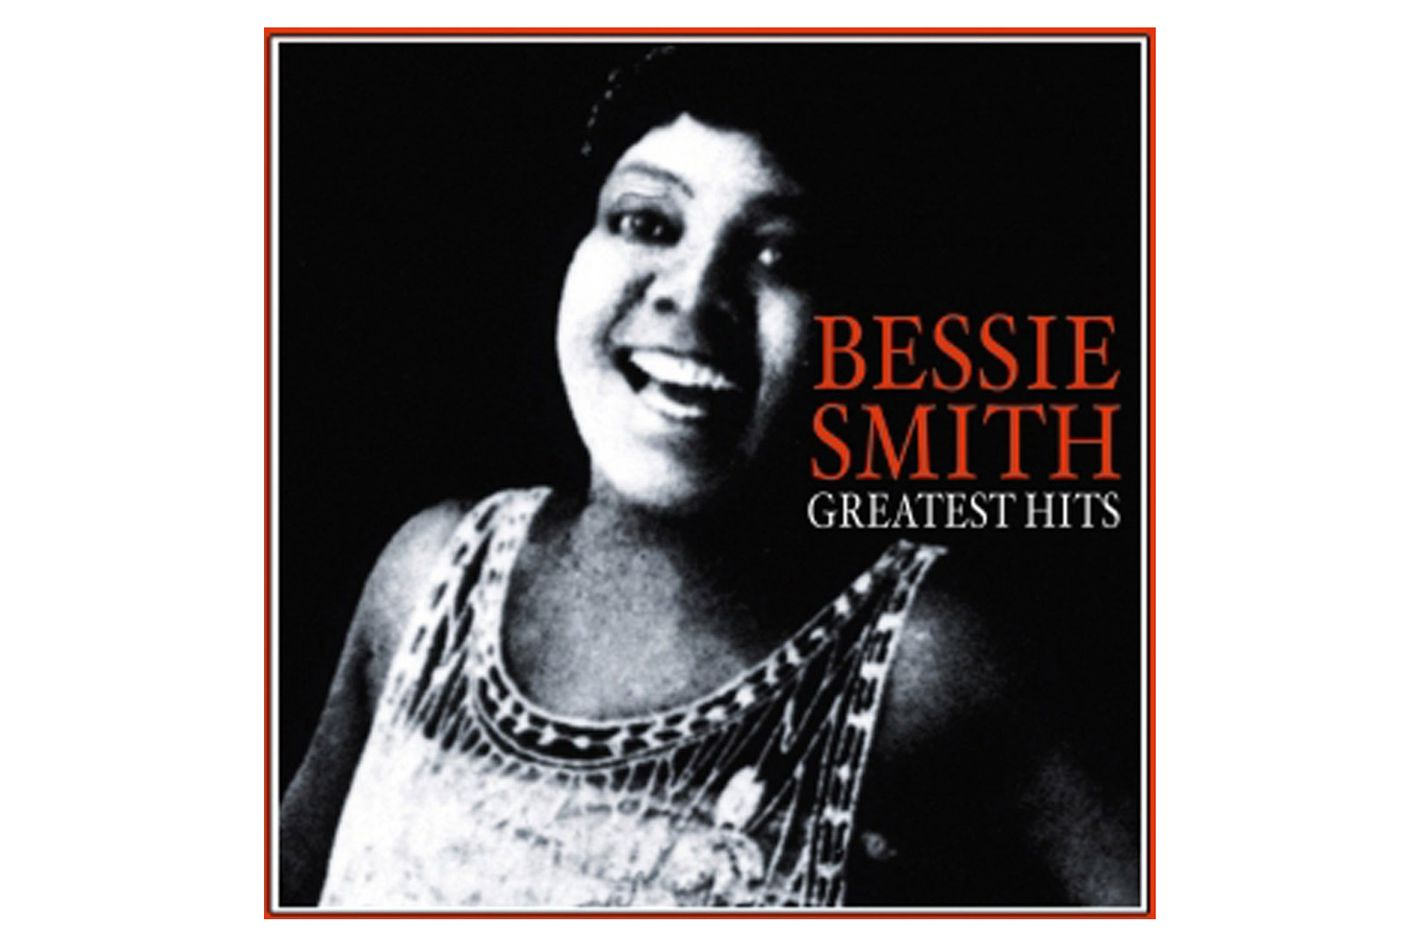 Bessie Smith Greatest Hits